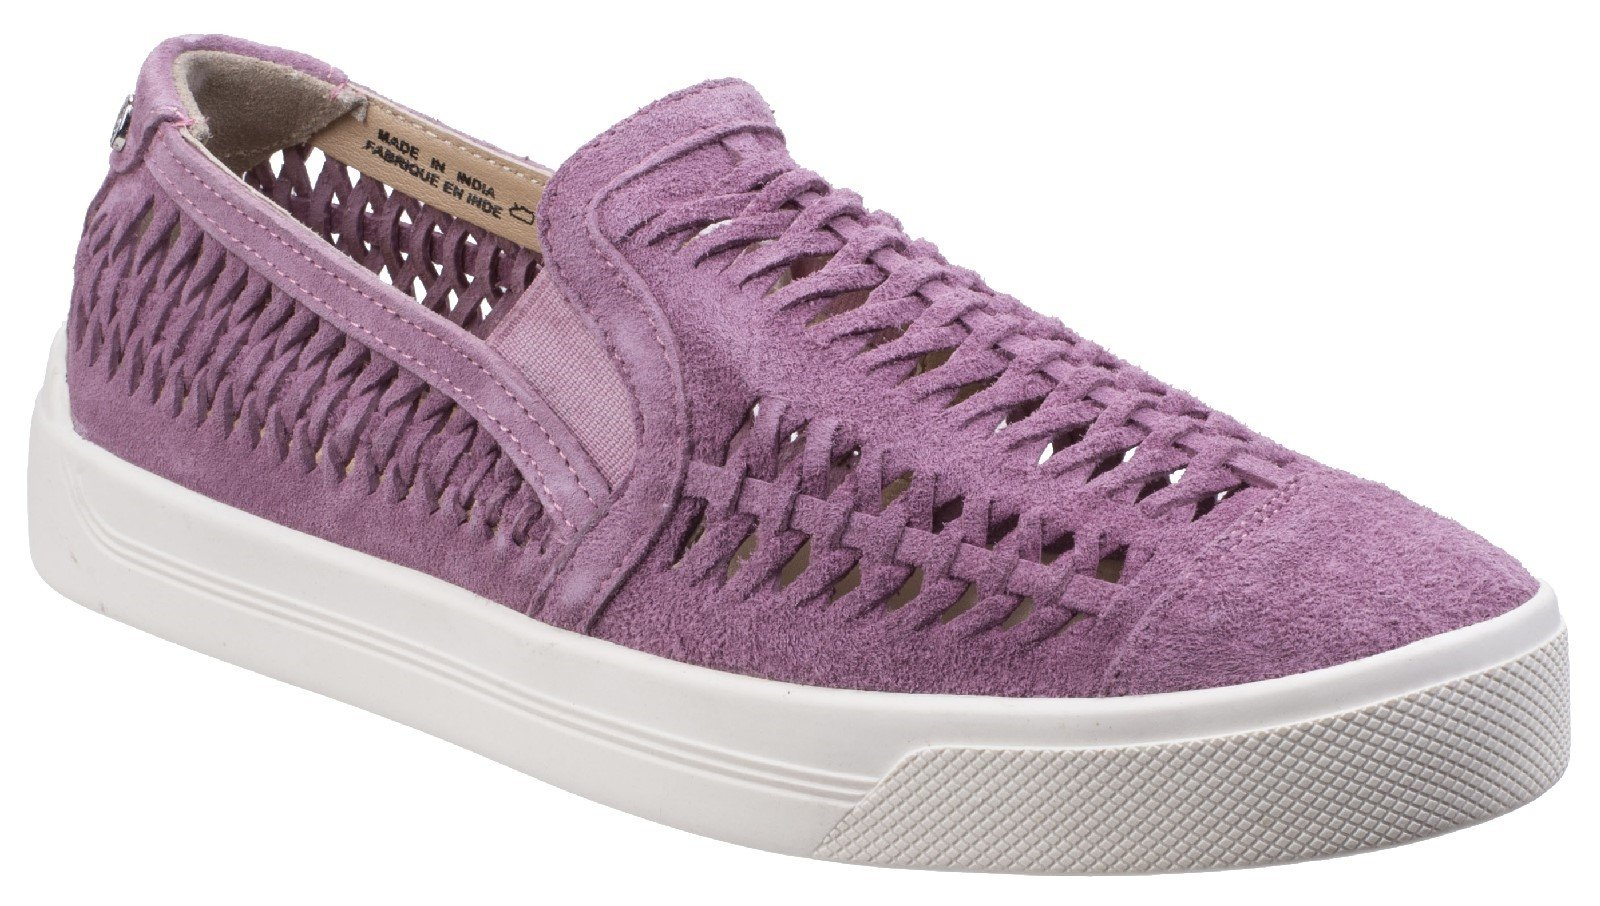 Hush Puppies Women's Gabbie Woven Slip On Trainer Various Colours 26368 - Orchid Suede 3